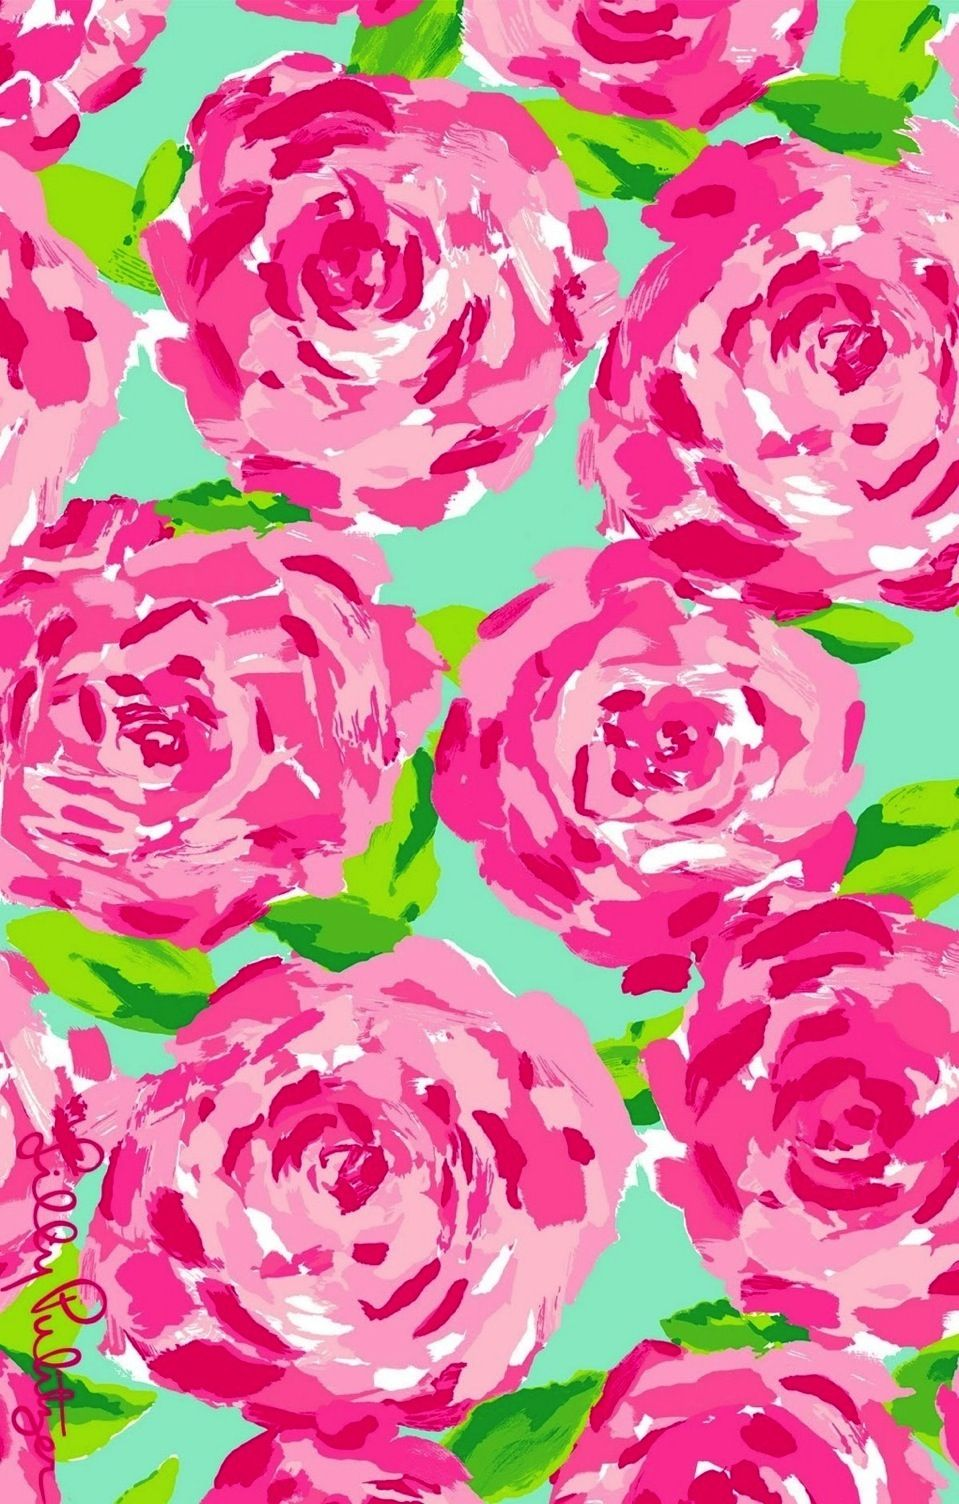 Lilly Pulitzer Iphone Wallpaper Lilly Pulitzer Prints Iphone